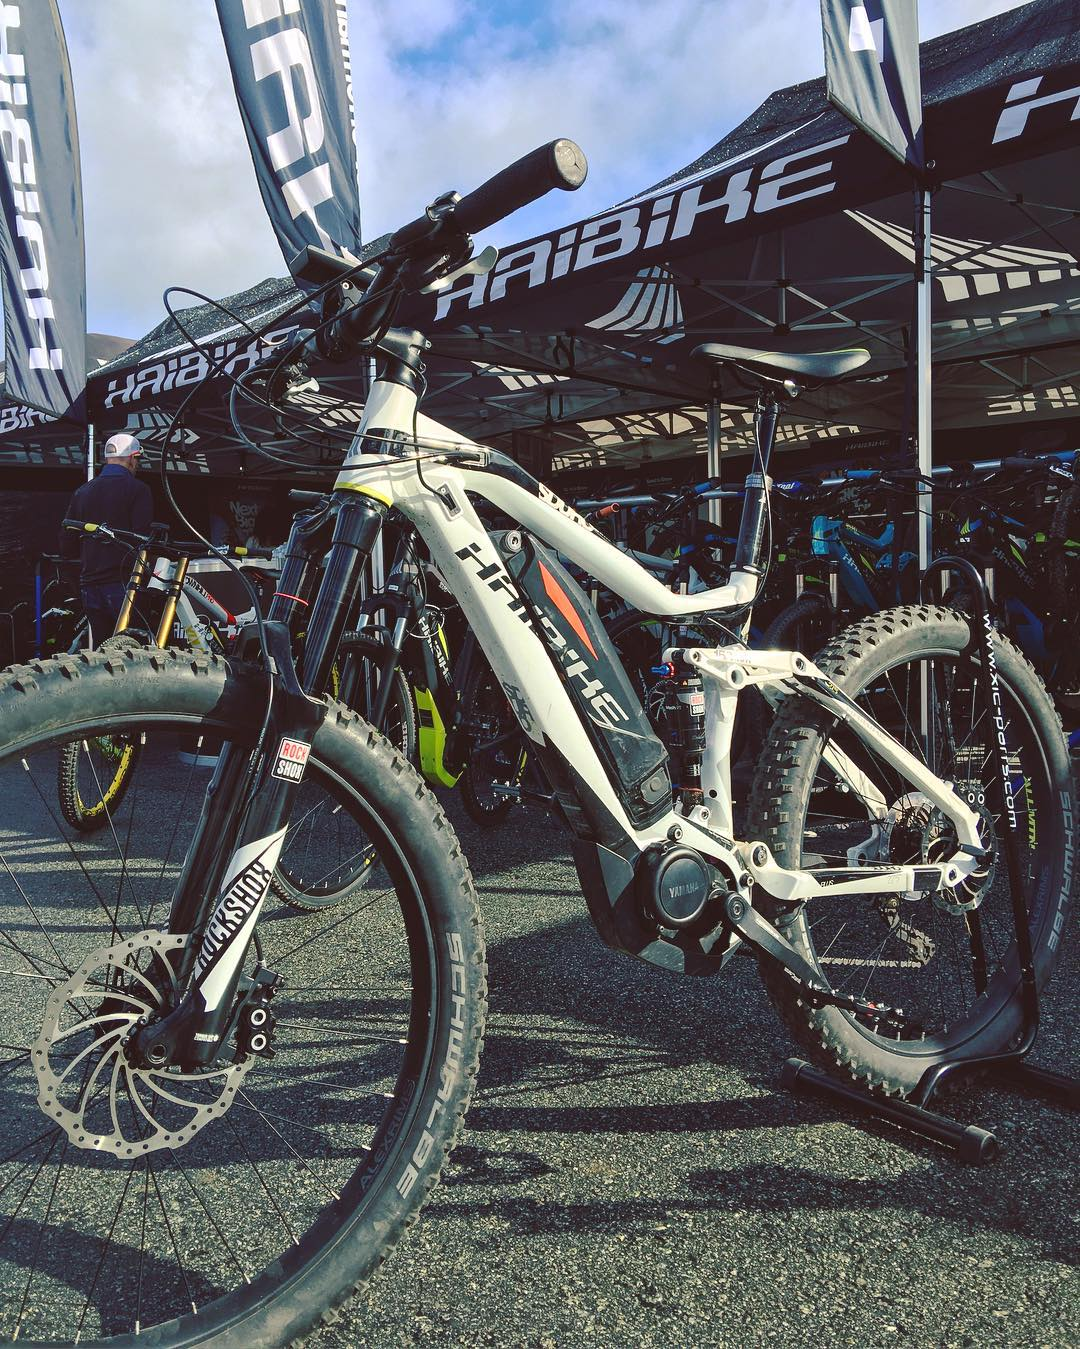 If you are at #seaotterclassic come and visit us at booth number 740, we have lots of great bikes for you to try if you like! #yamaha #bosch #xduro #sduro #emtb #ebike